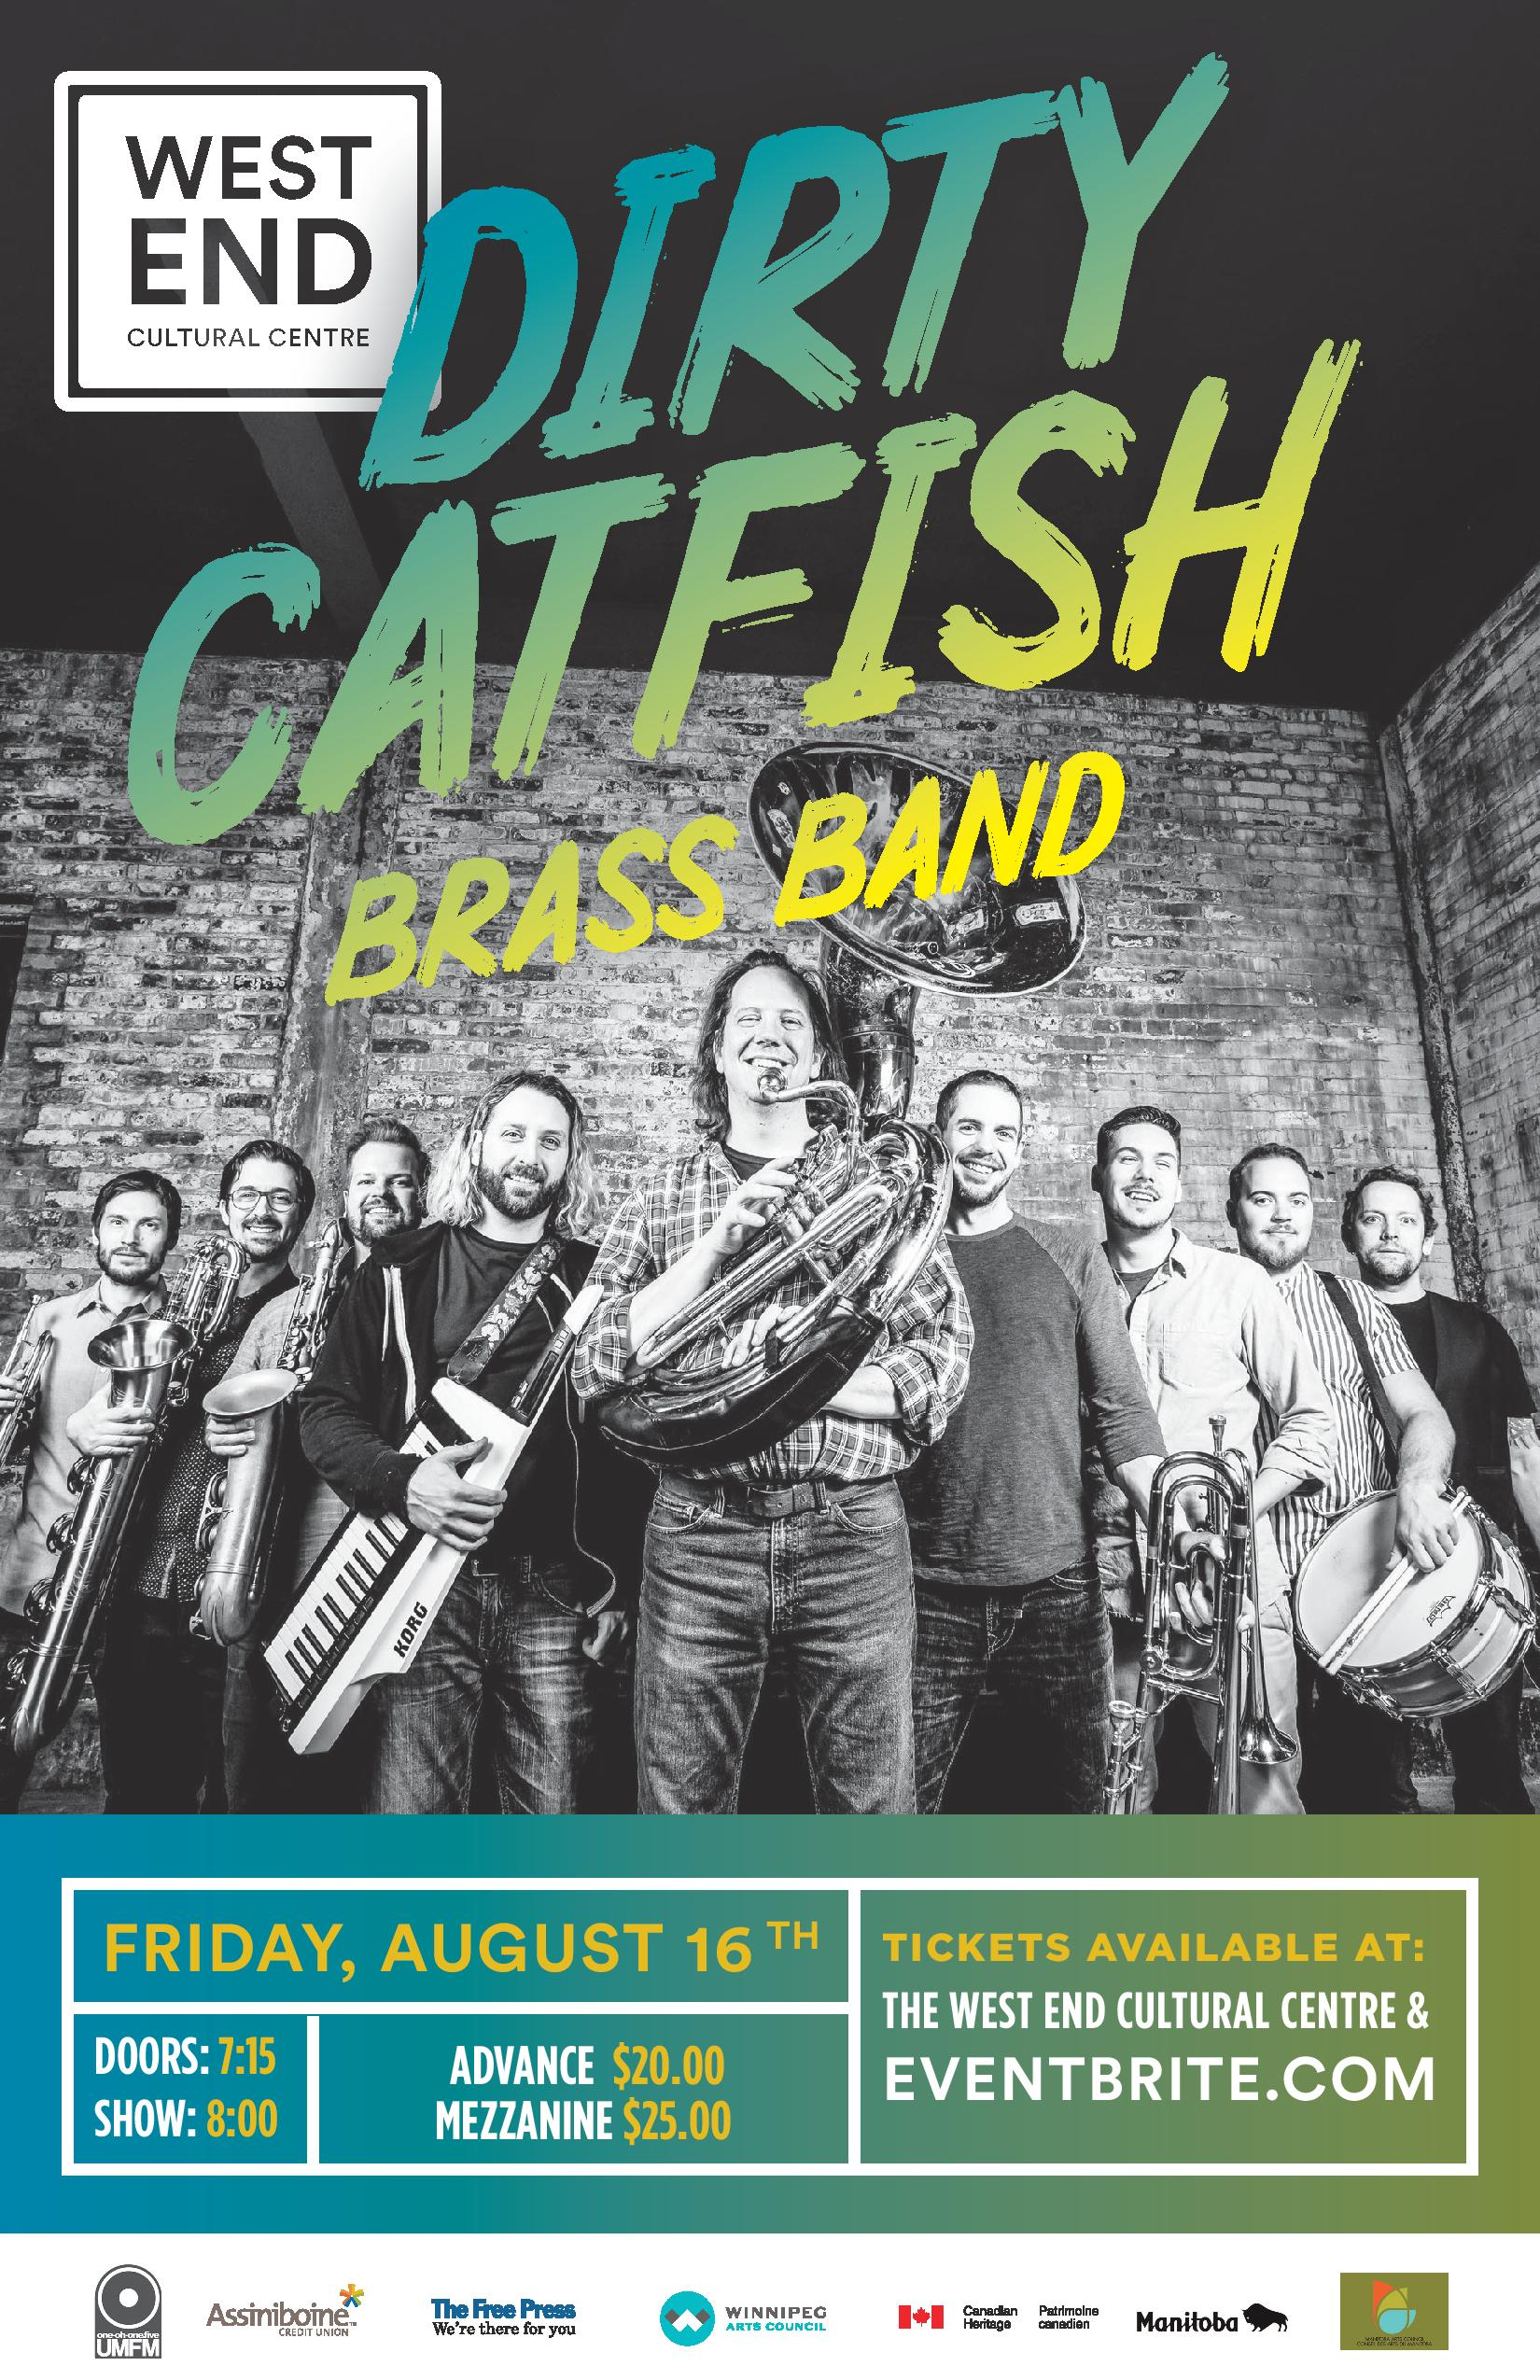 190722 Dirty Catfish Brass Band.jpg